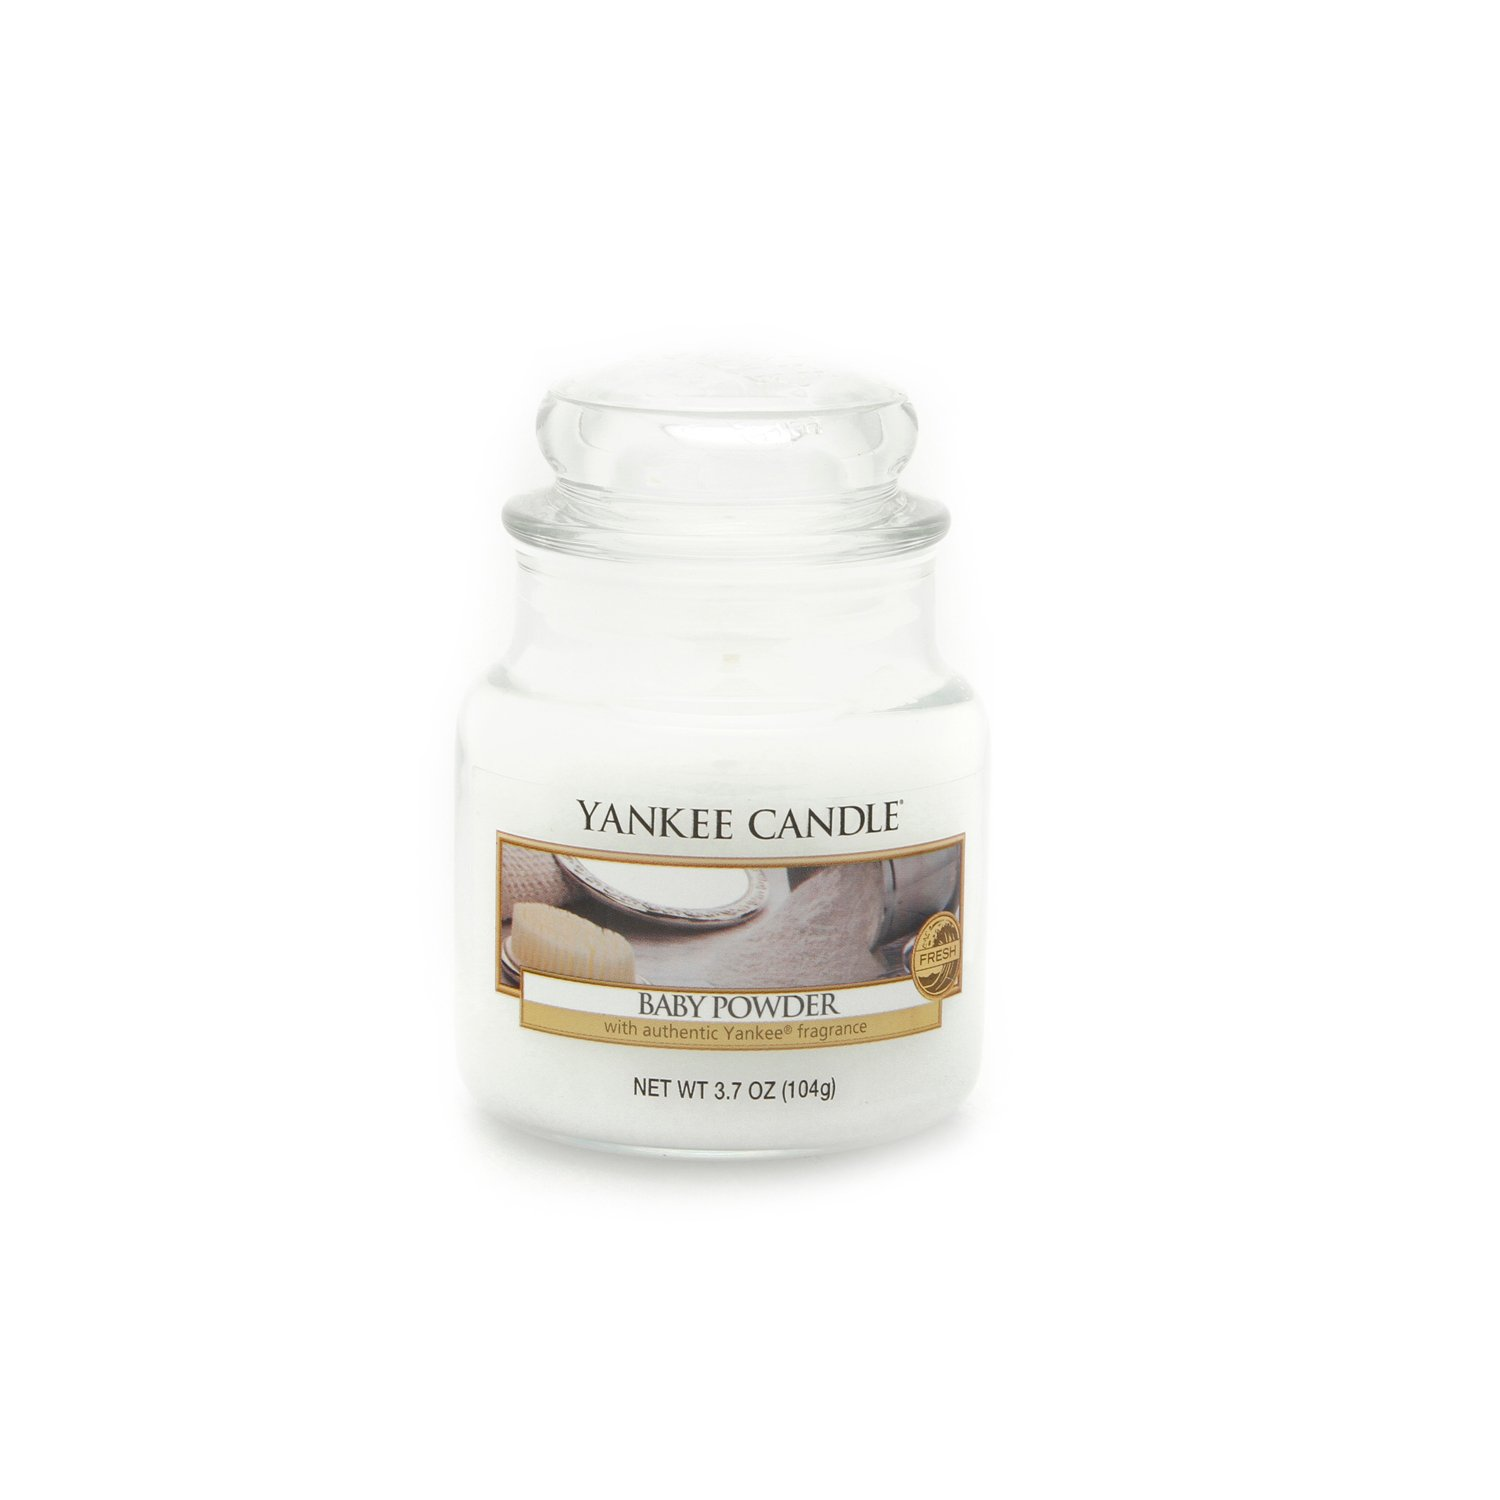 yankee candle kerzen kerzen yankee kerzen yankee new for fall amazon yankee candle glaskerze. Black Bedroom Furniture Sets. Home Design Ideas